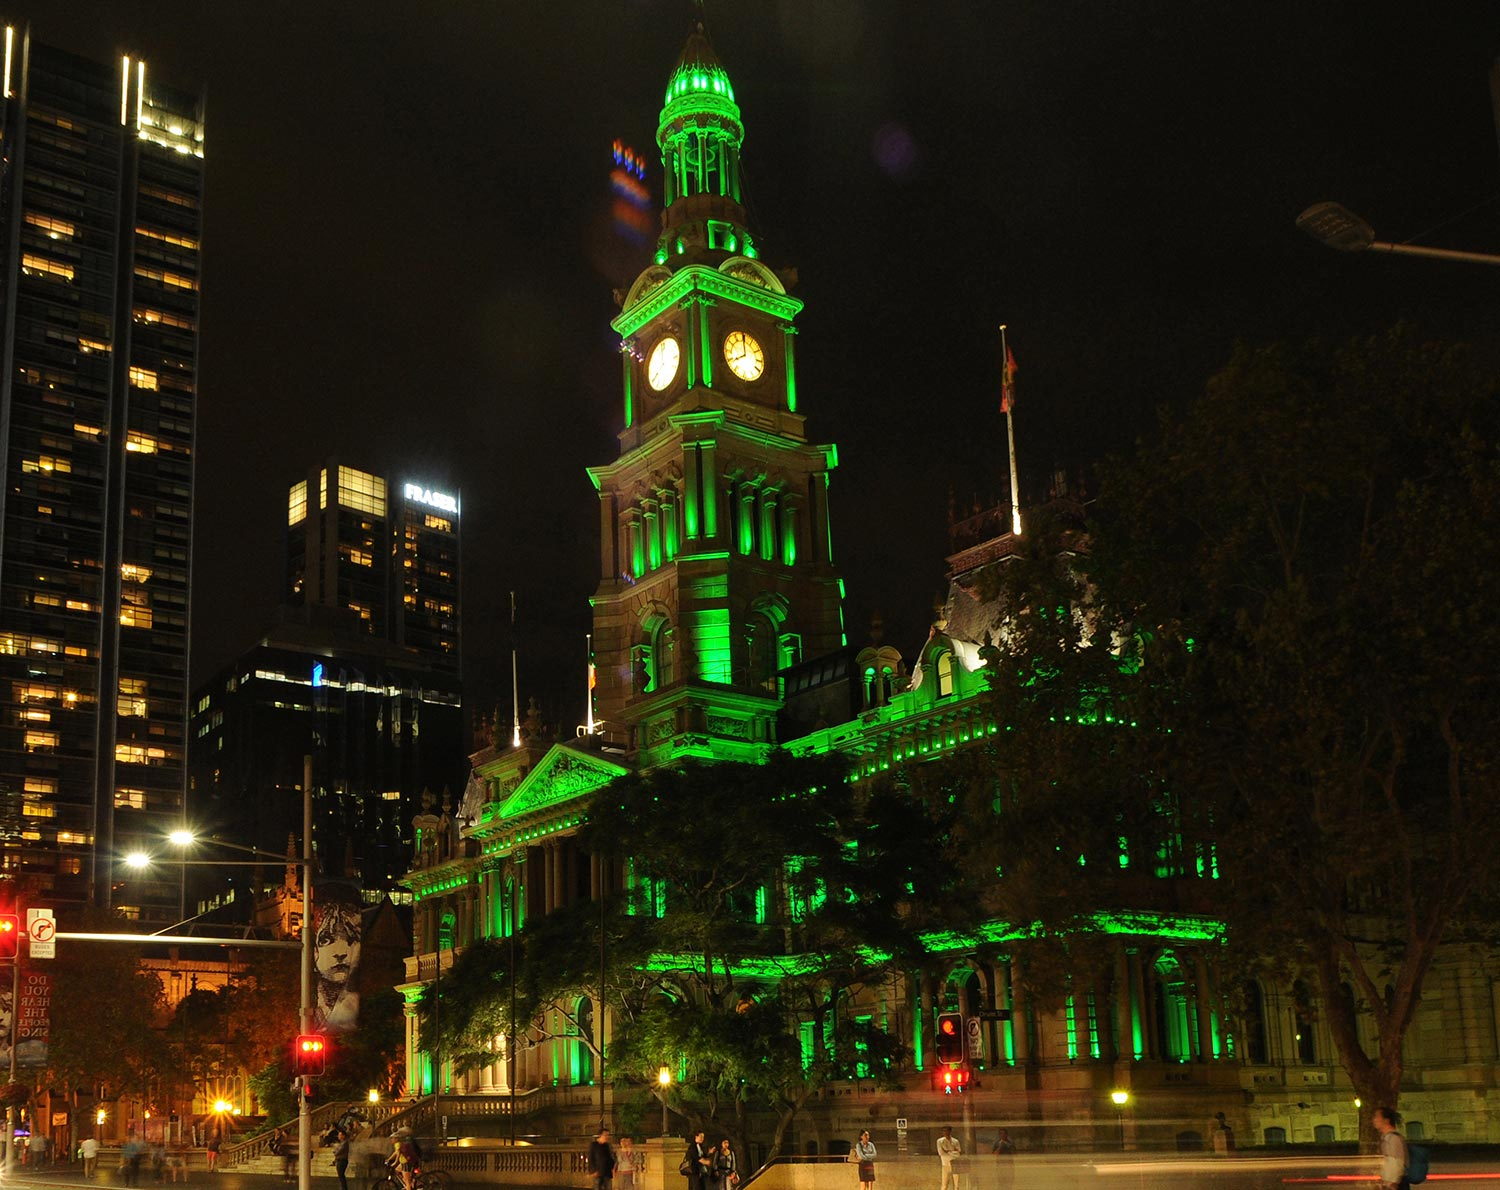 Sydney Town Hall will be lit in green to celebrate the city's Irish heritage.